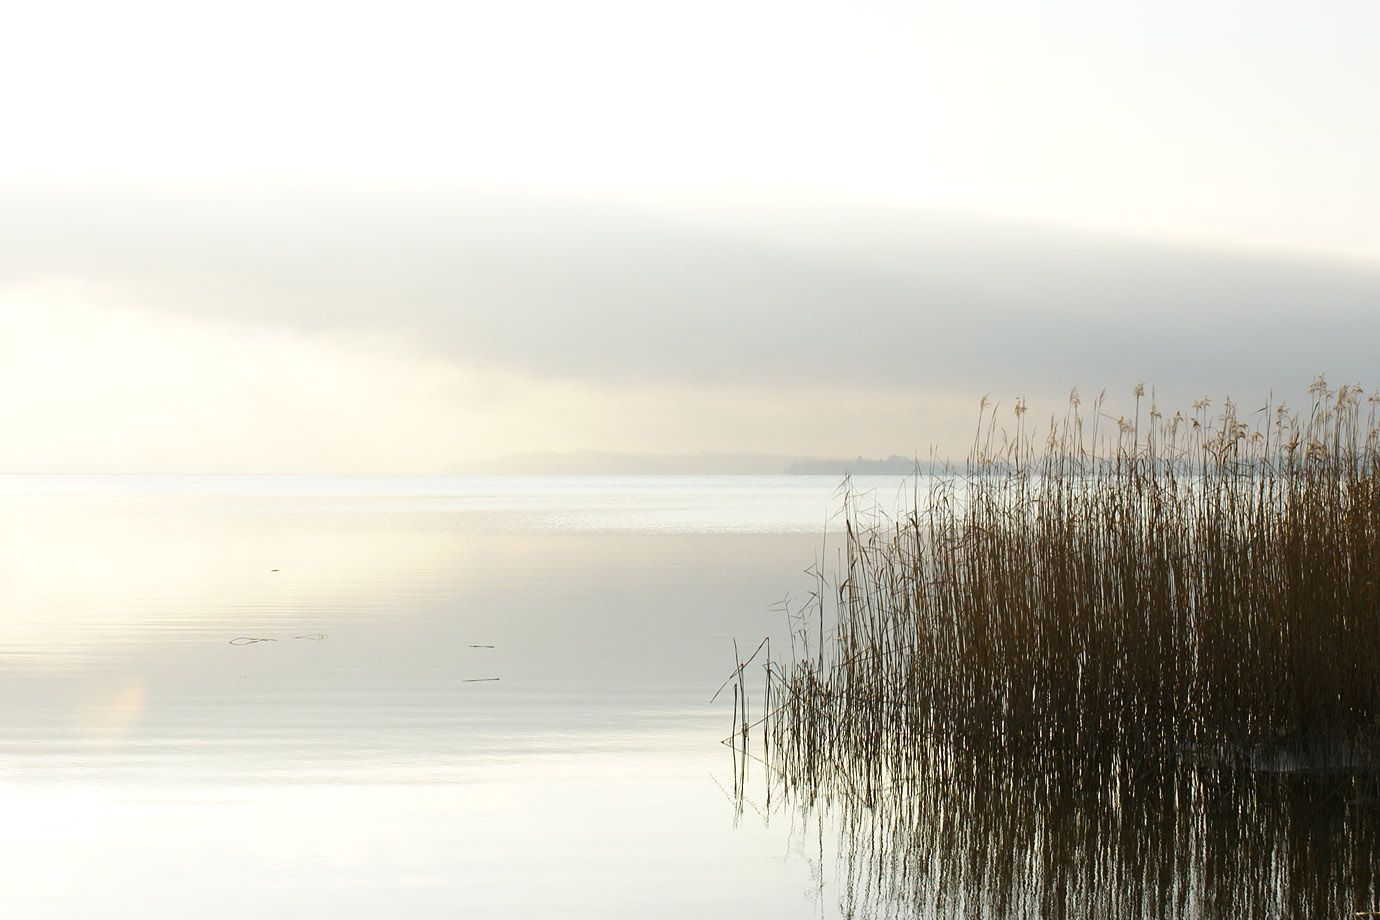 Stille am Chiemsee